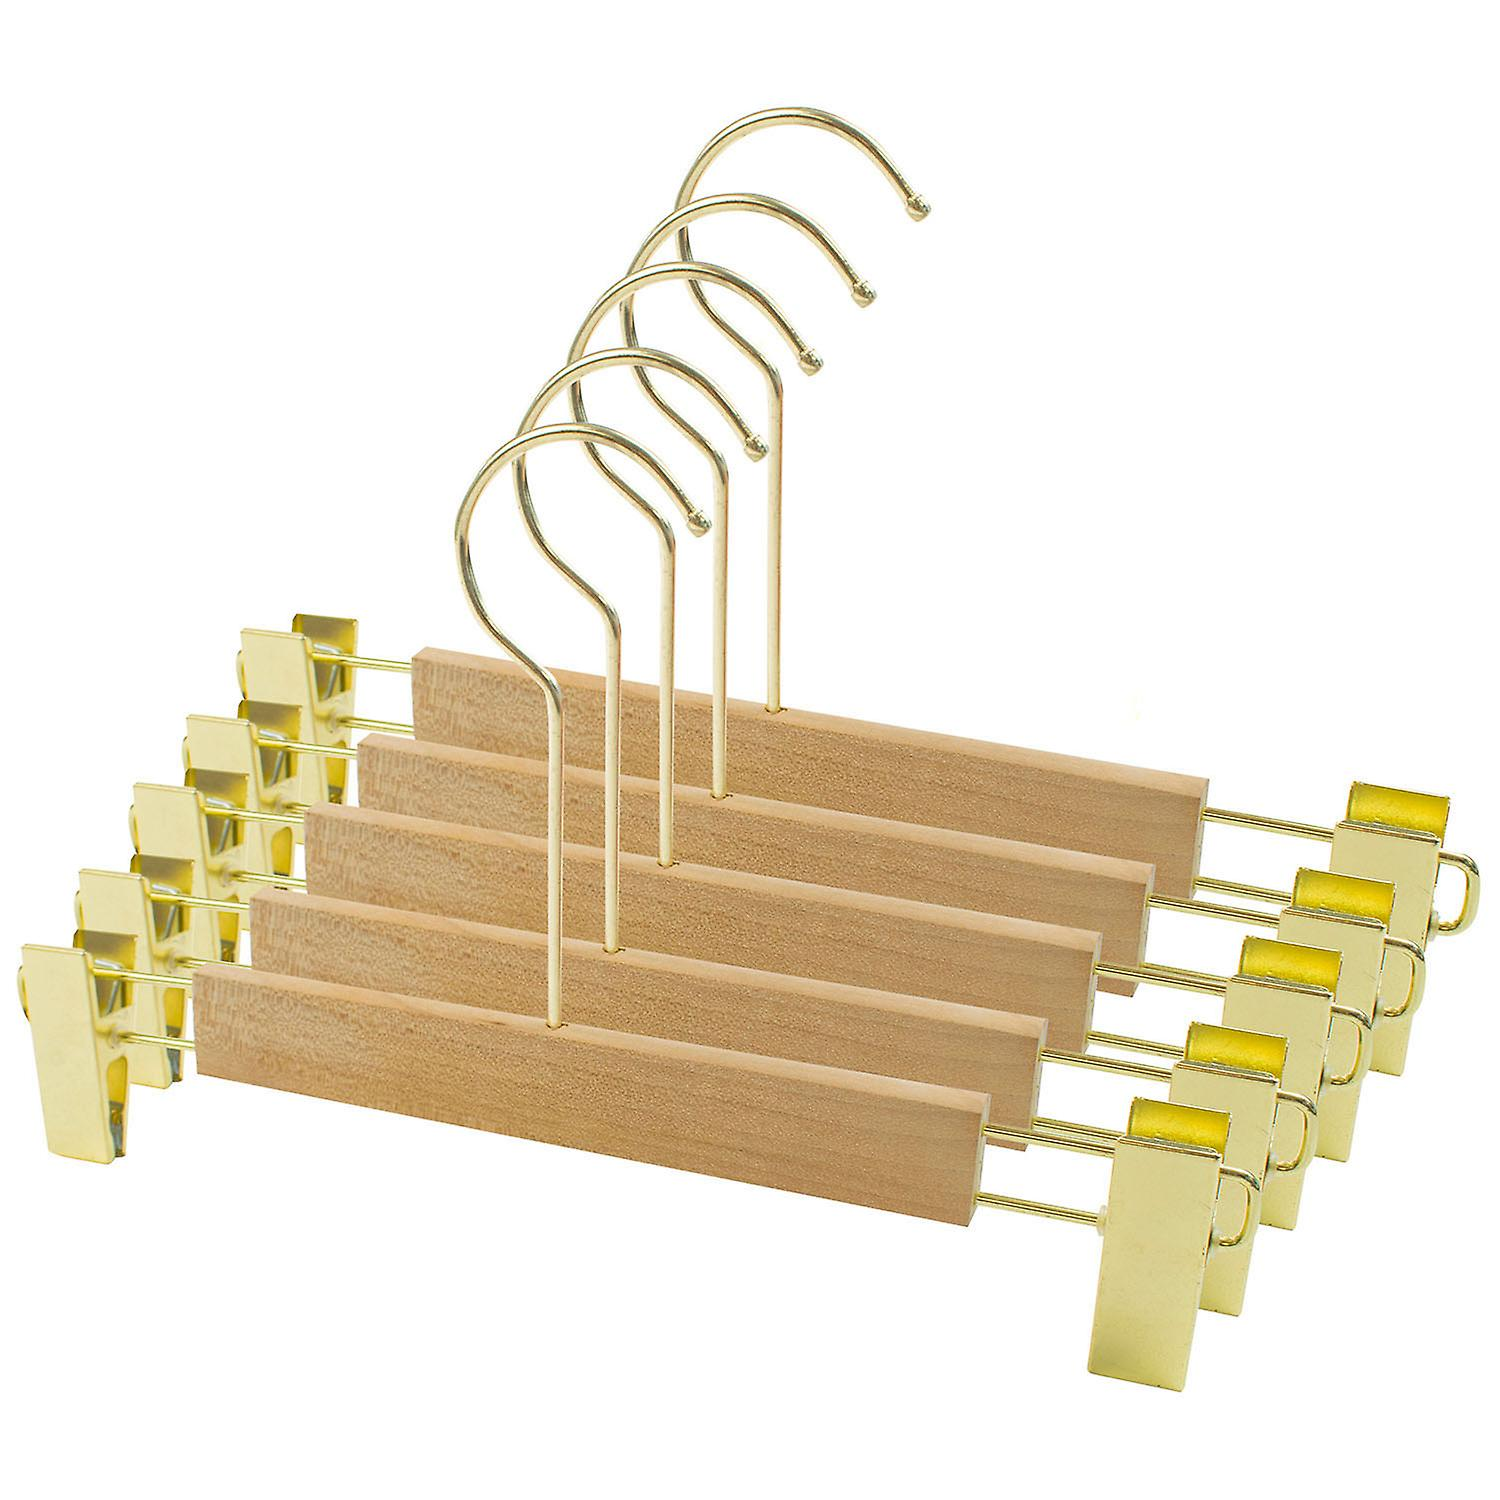 TRIXES 5PC Wooden Hanger Trouser Skirt Stylish Light Wood and Gold Metal Clips